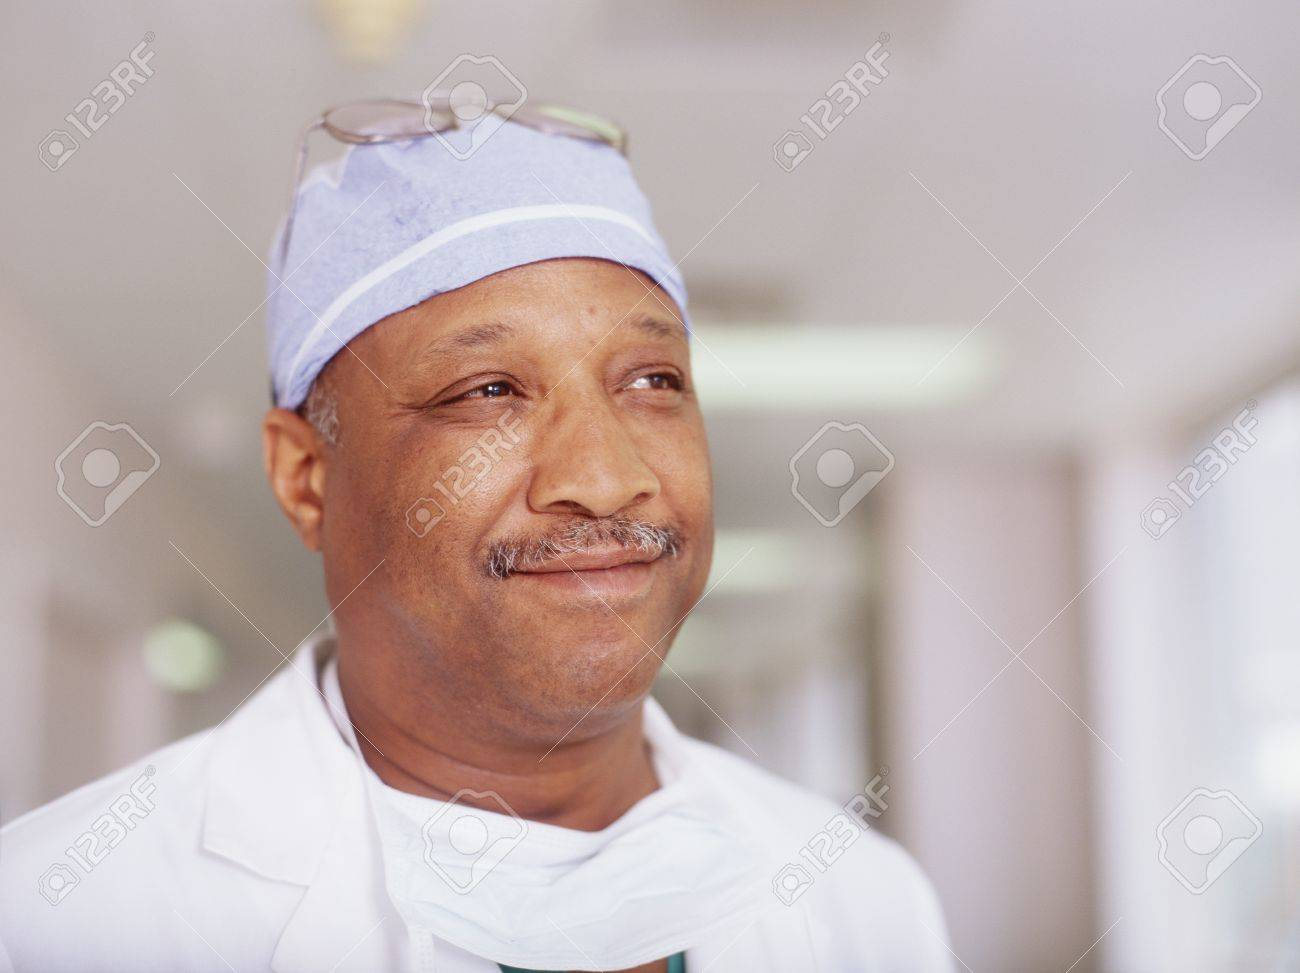 Portrait of a male doctor smiling Stock Photo - 16044345